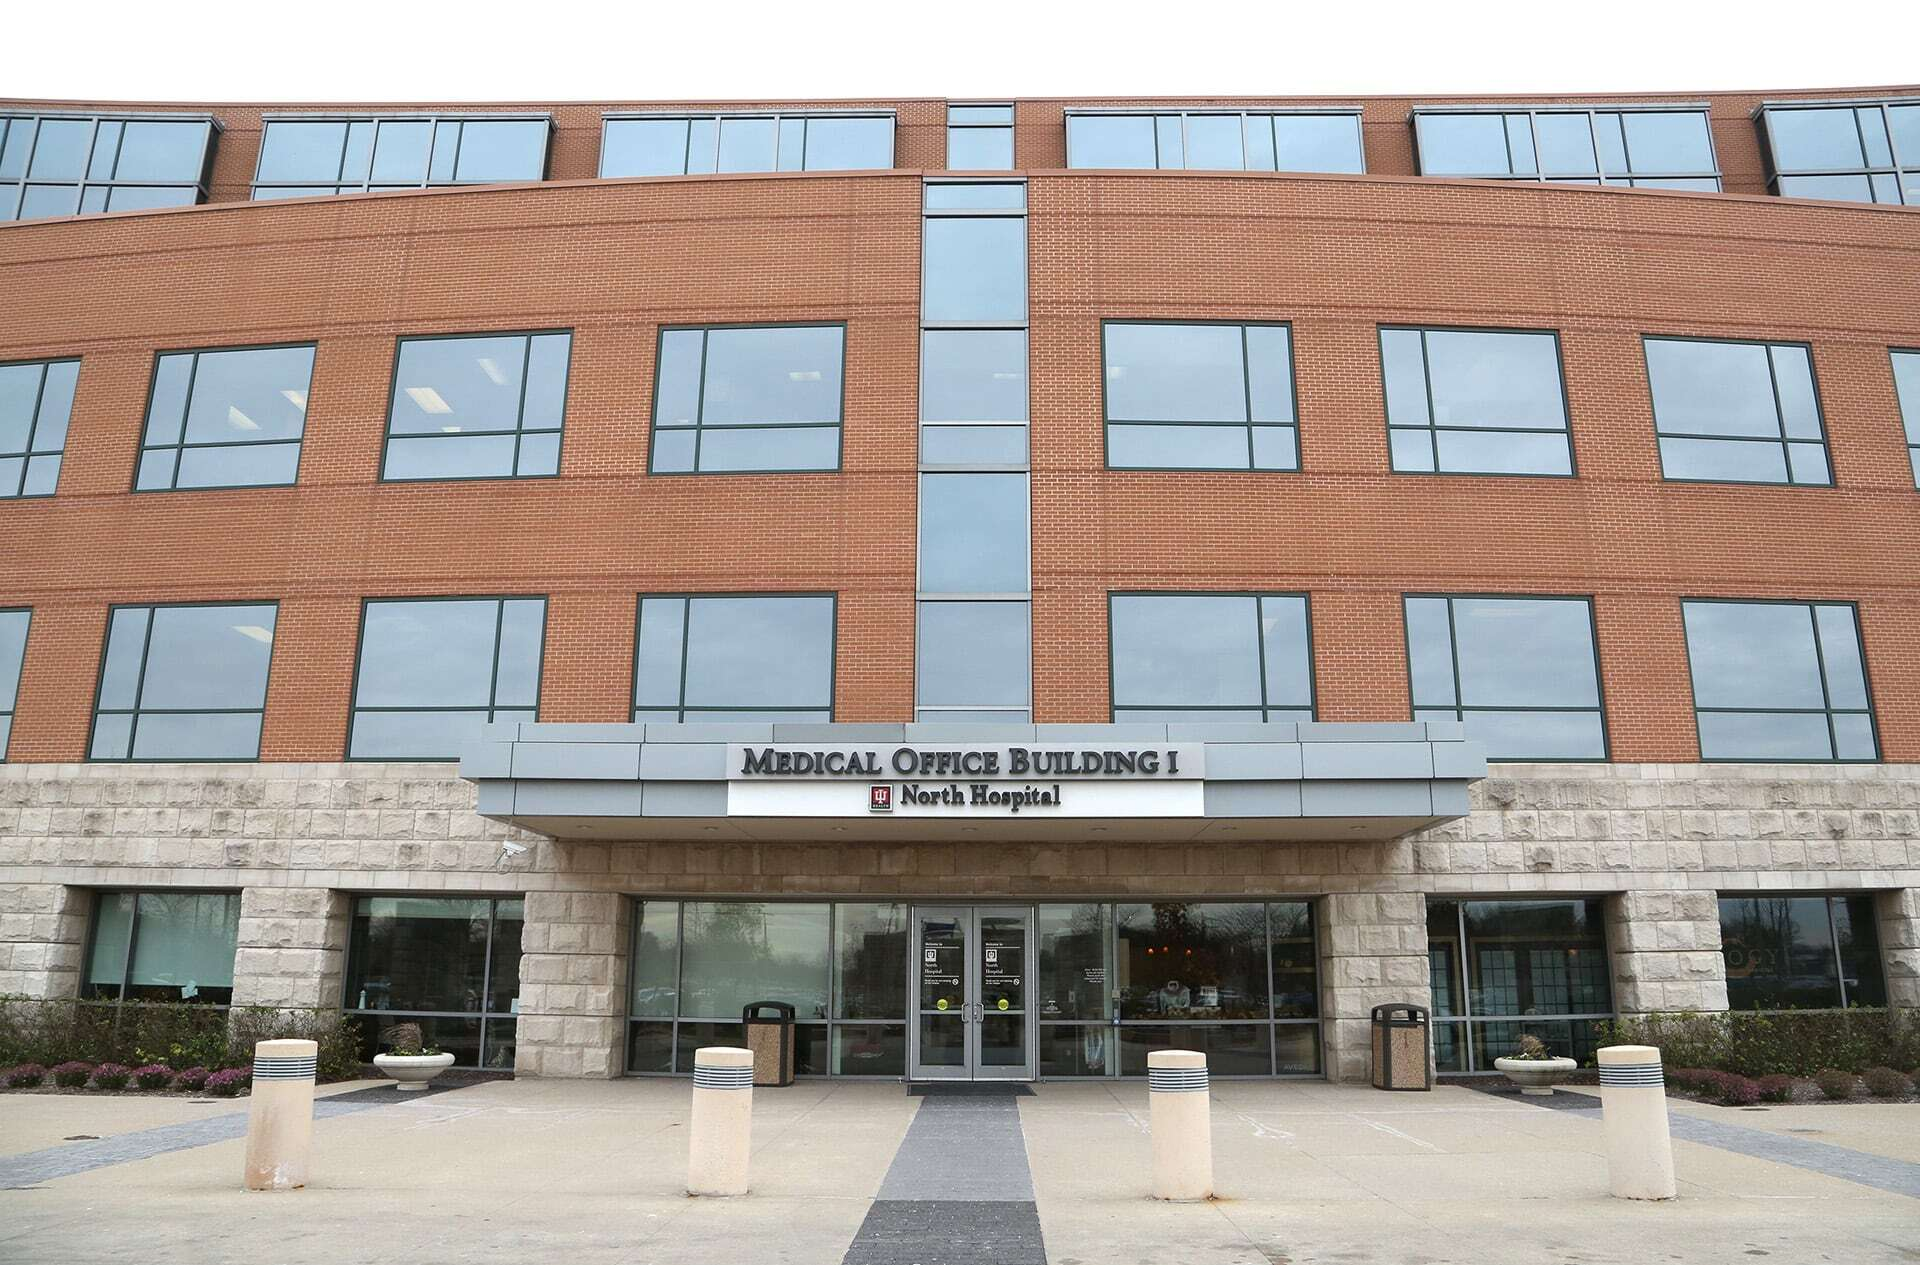 IU Health North Hospital Medical Office Building - Main Entrance